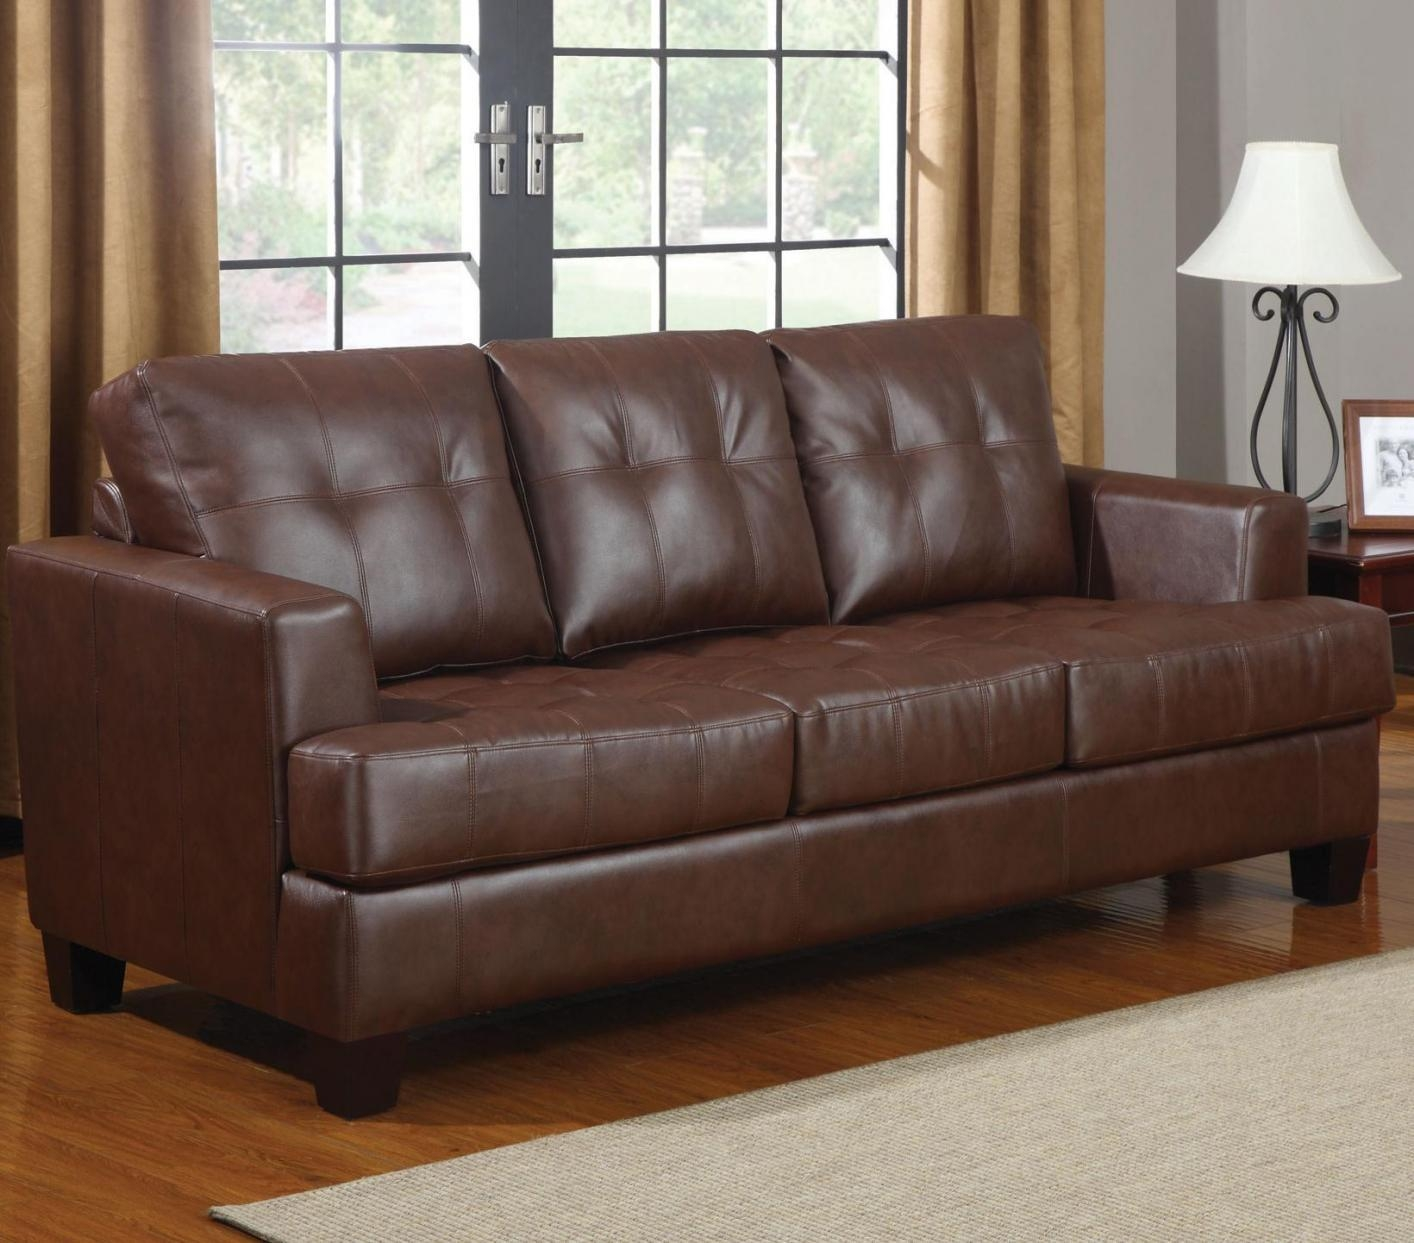 dfs leather sofa bed potterybarn sofas 20 collection of vintage beds ideas